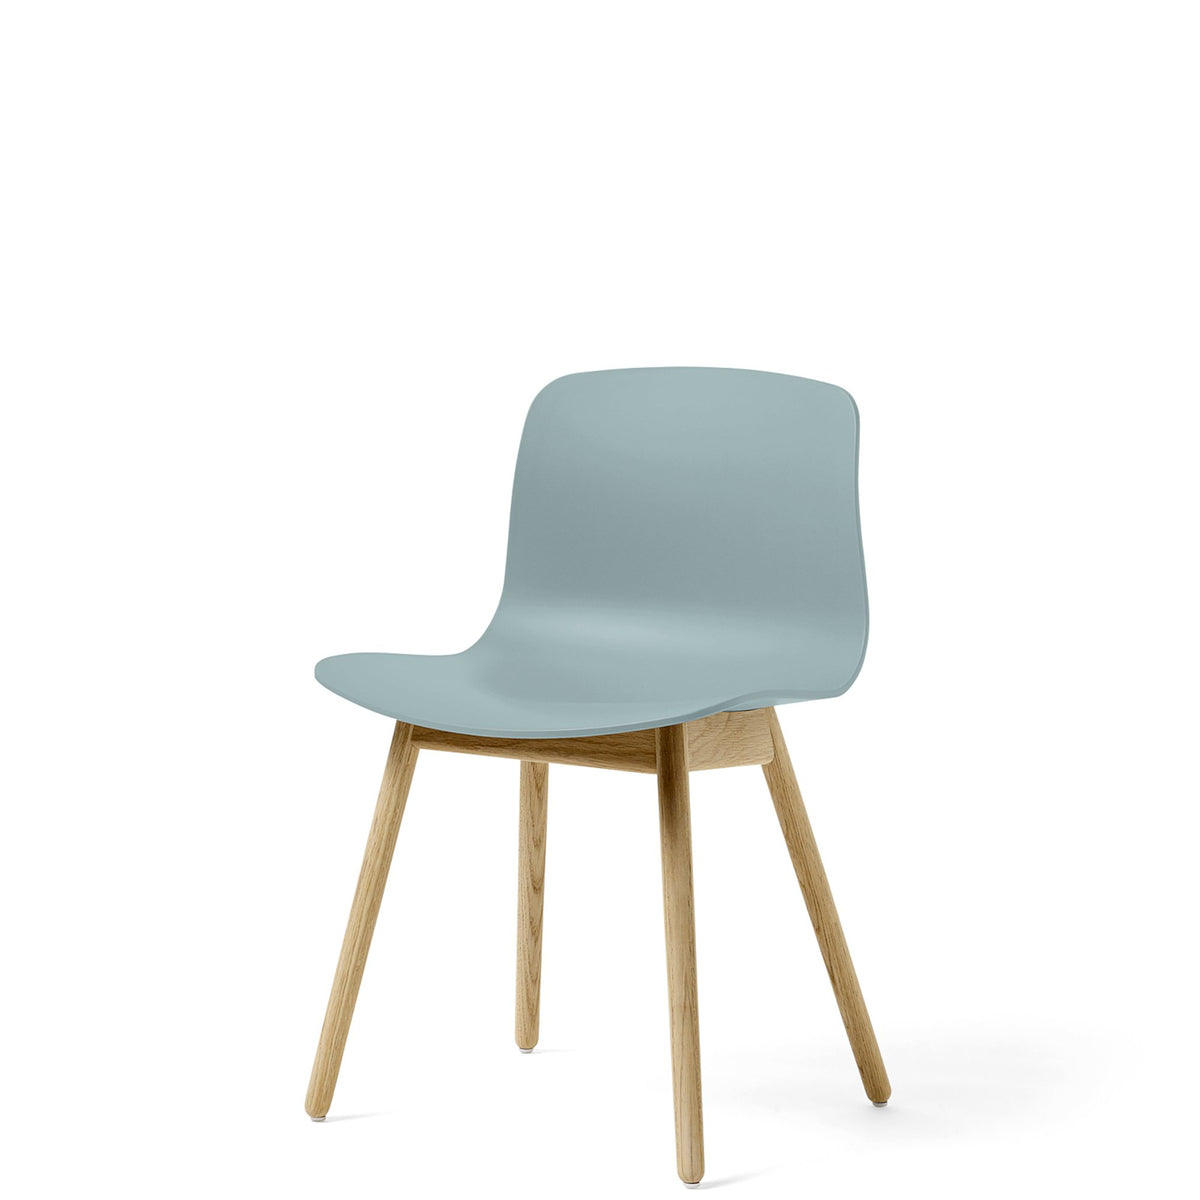 HAY About A Chair AAC12 Dusty Blue Chair with Matt Lacquered Solid Oak Frame